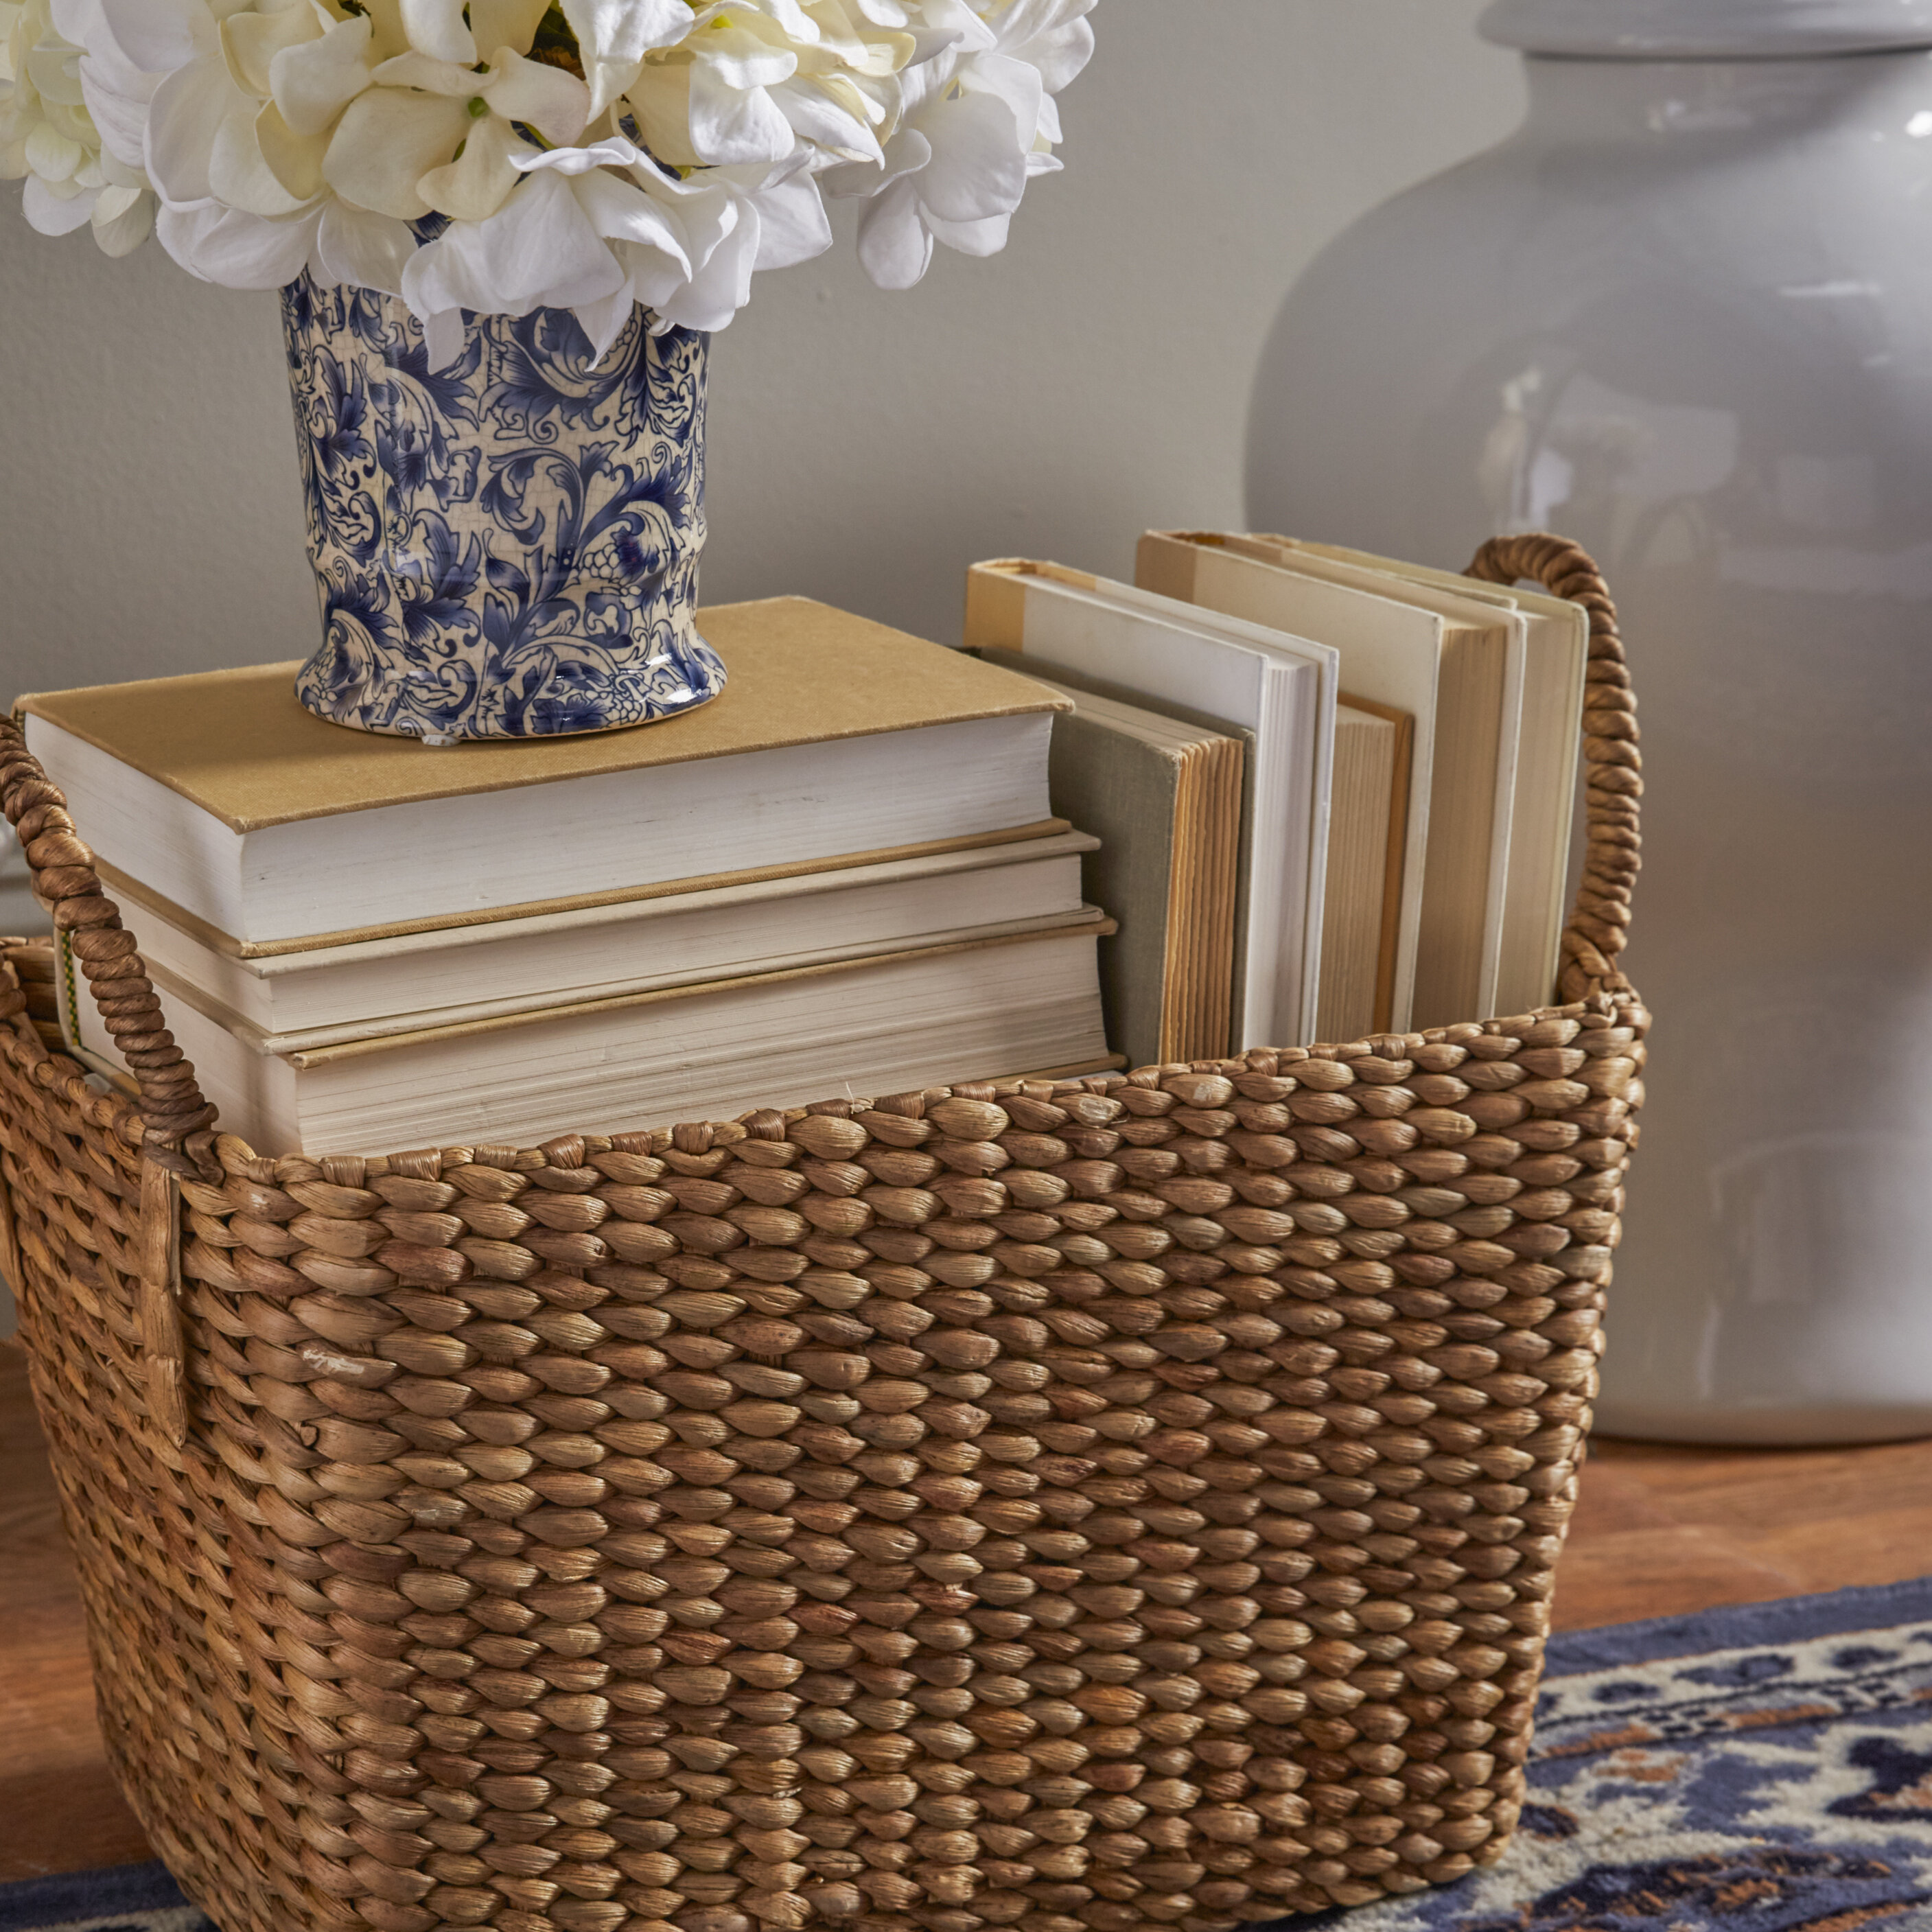 & Birch Lane™ Woven Storage Bin u0026 Reviews | Birch Lane